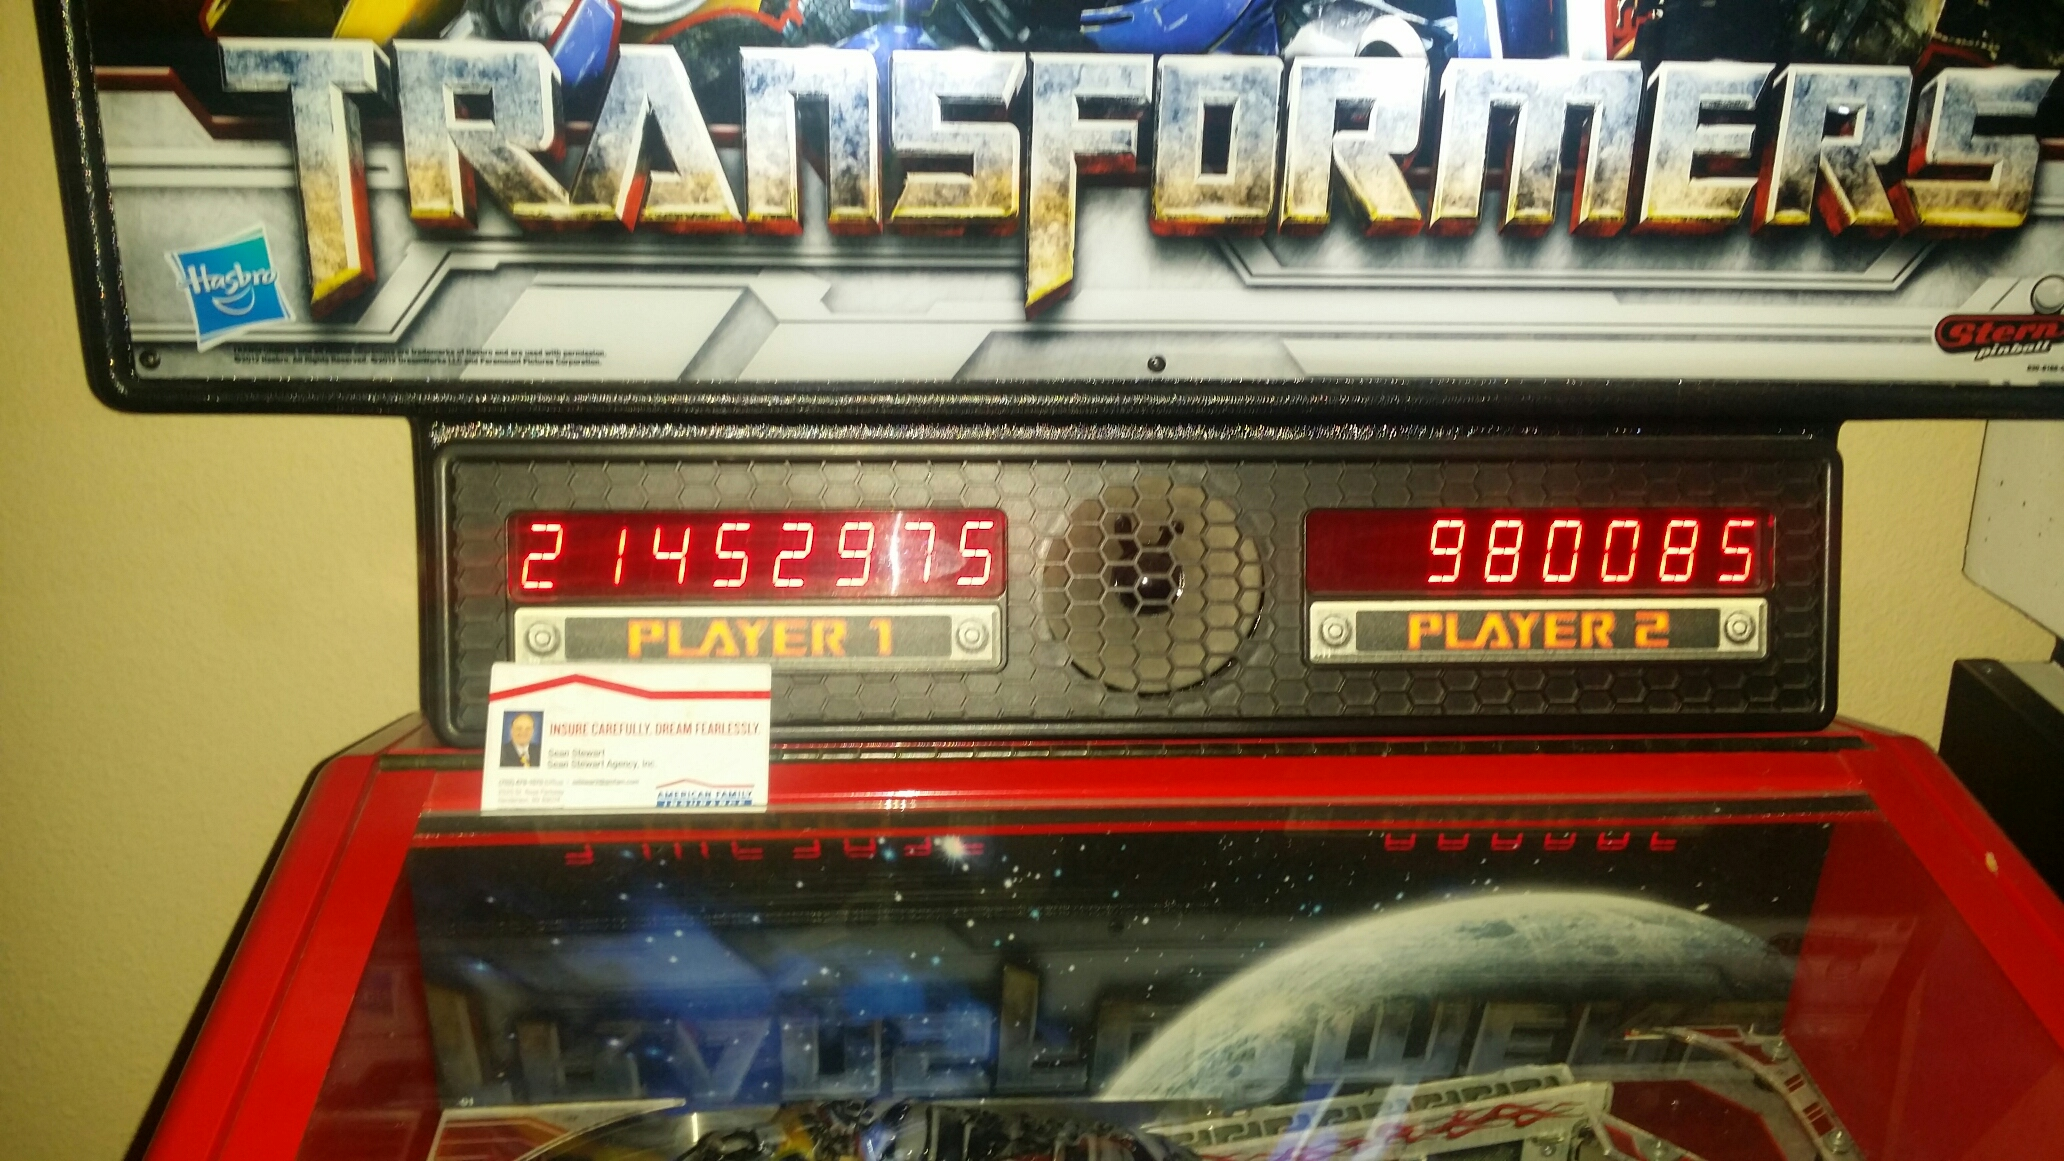 Transformers: The Pin 21,452,975 points